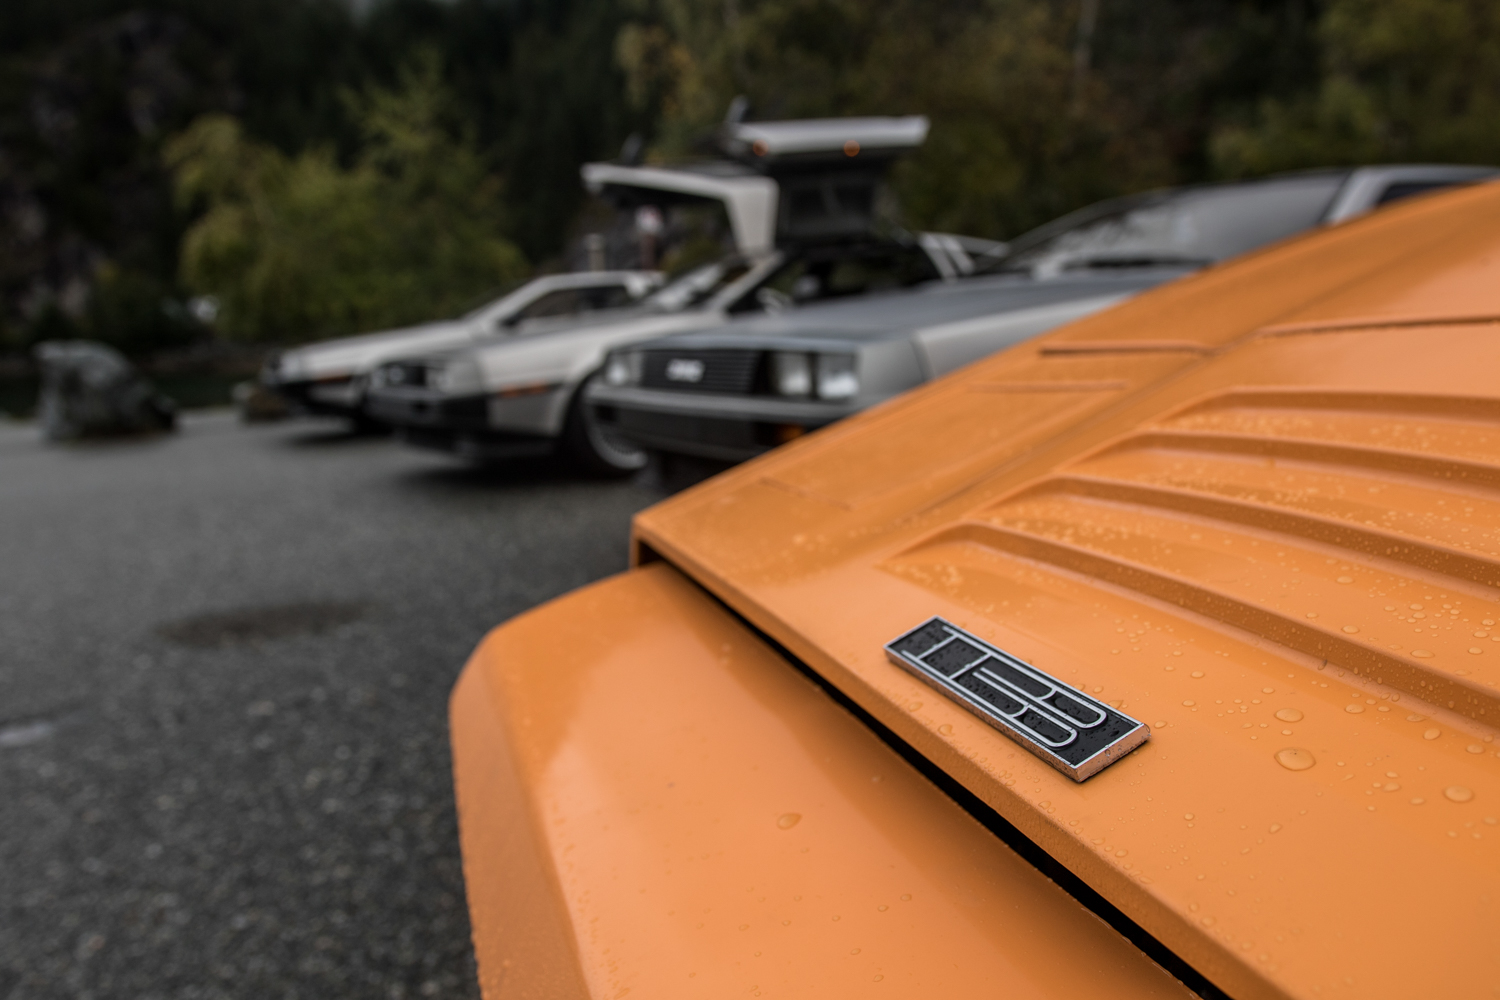 DeLorean DMC-12 vs Bricklin badge detail